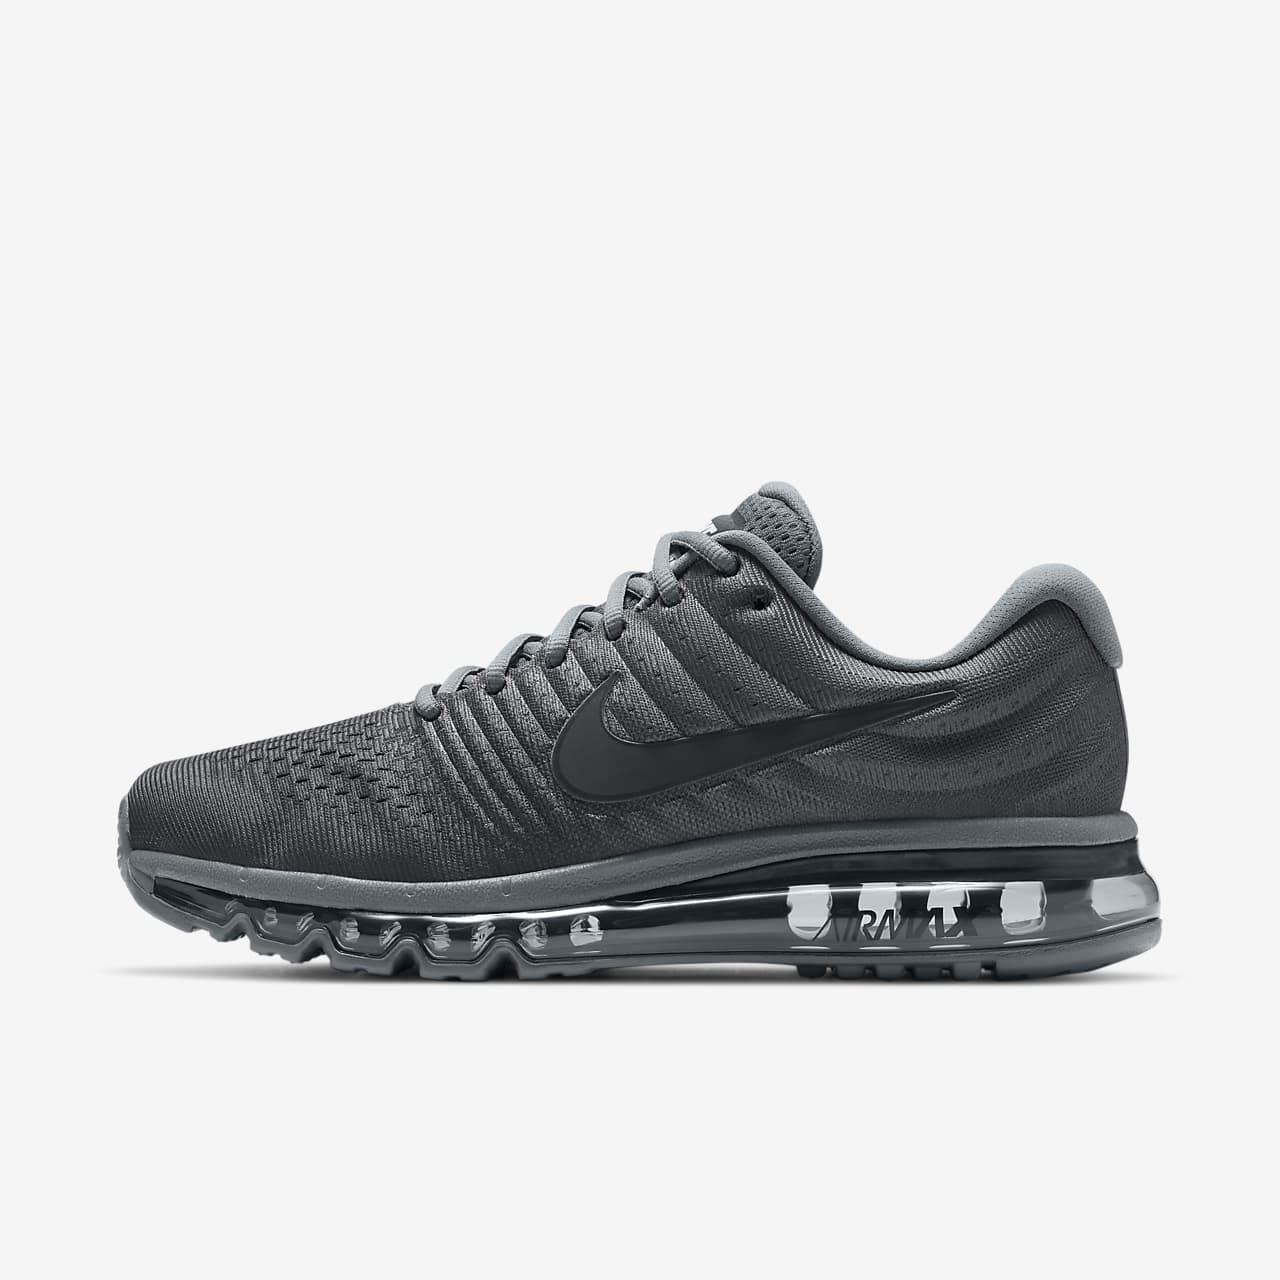 92ff7ccad354 Nike Air Max 2017 Men s Shoe. Nike.com